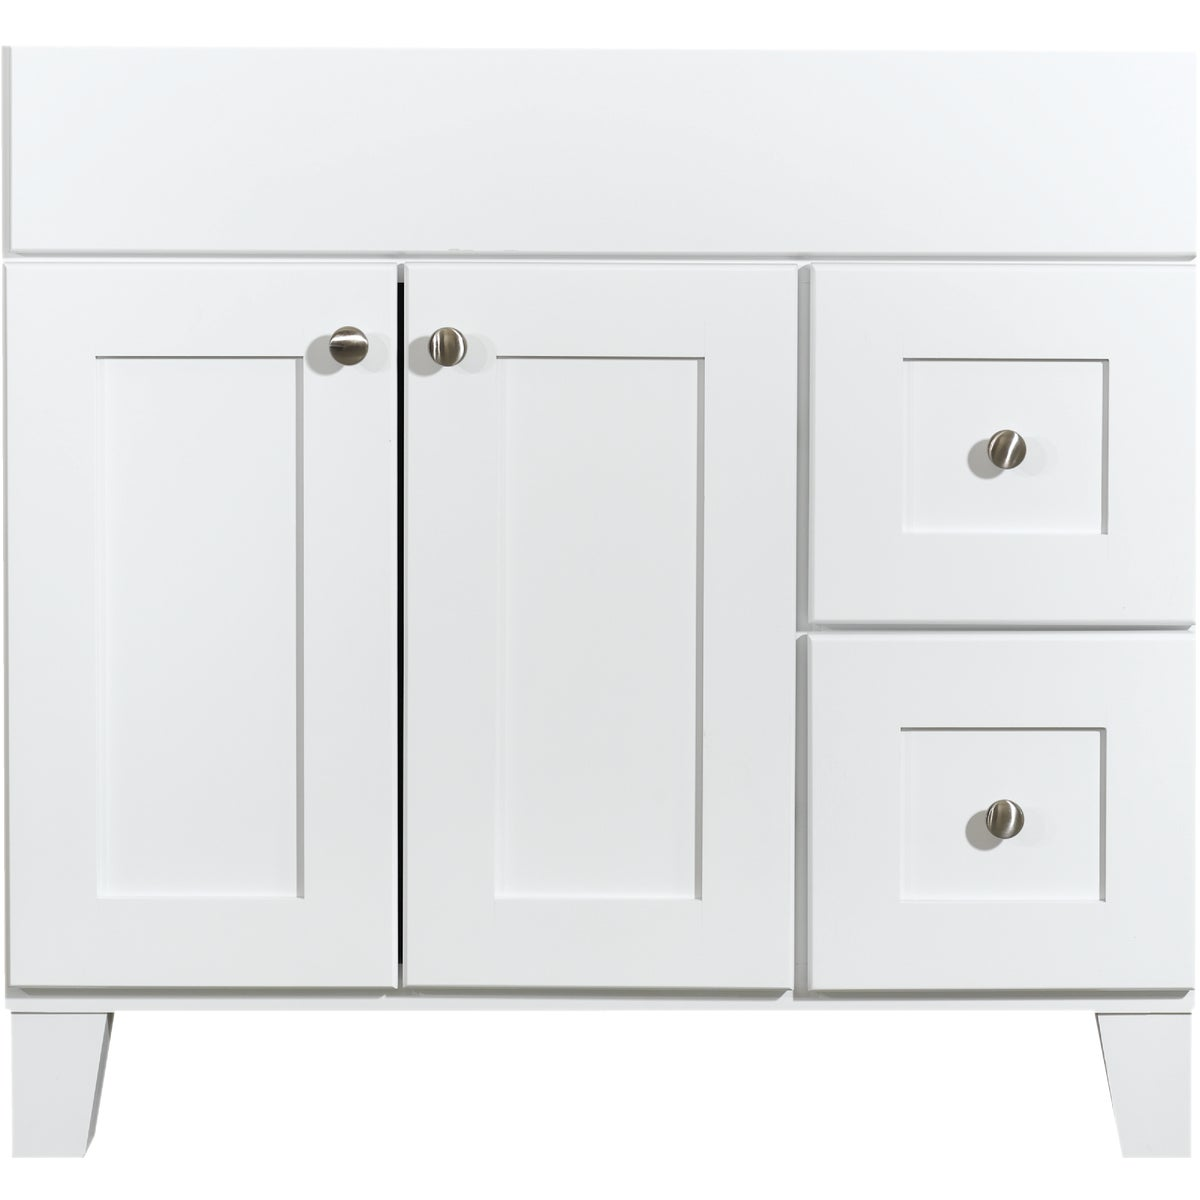 "36"" OSAGE WHITE VANITY - P/OBW-VTR36T-WL-05 by Bertch Cab Mfg Inc"